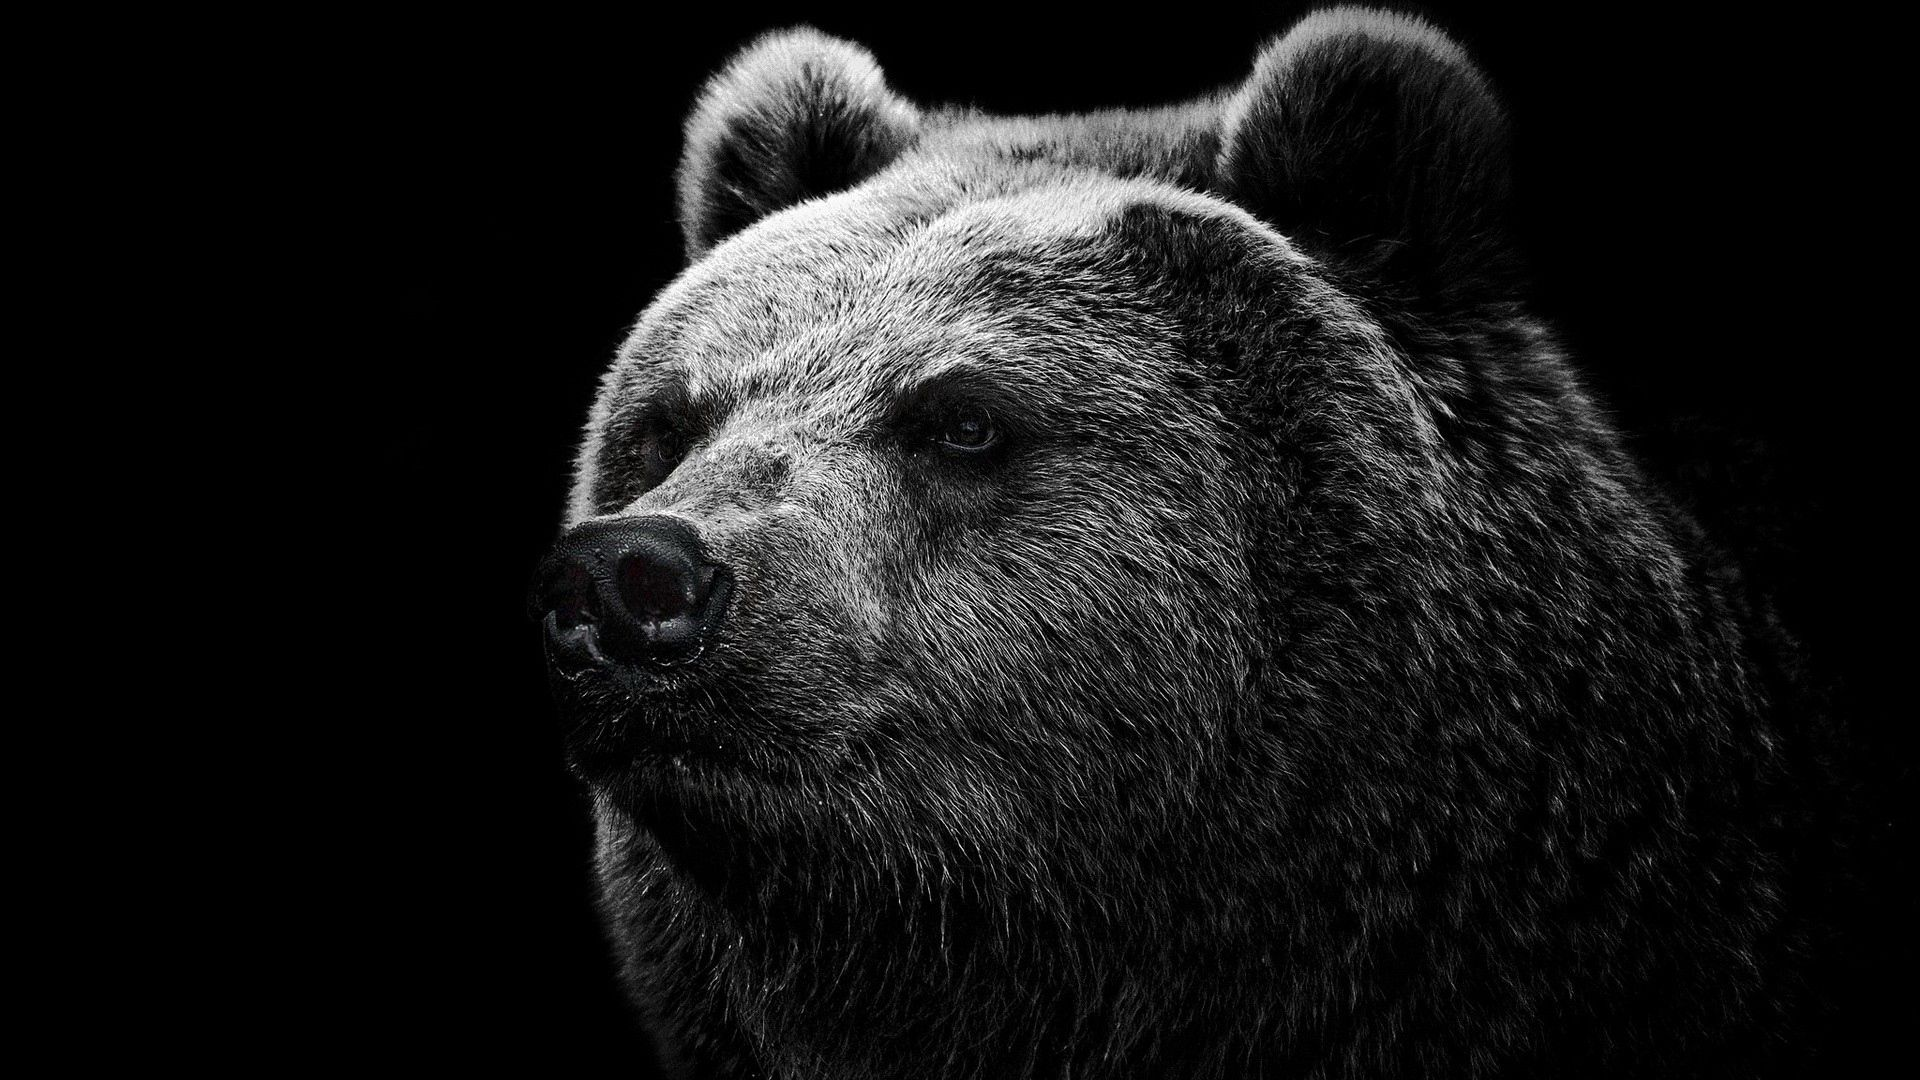 Cute Bear Face Black Black White Download Hd Wallpaper